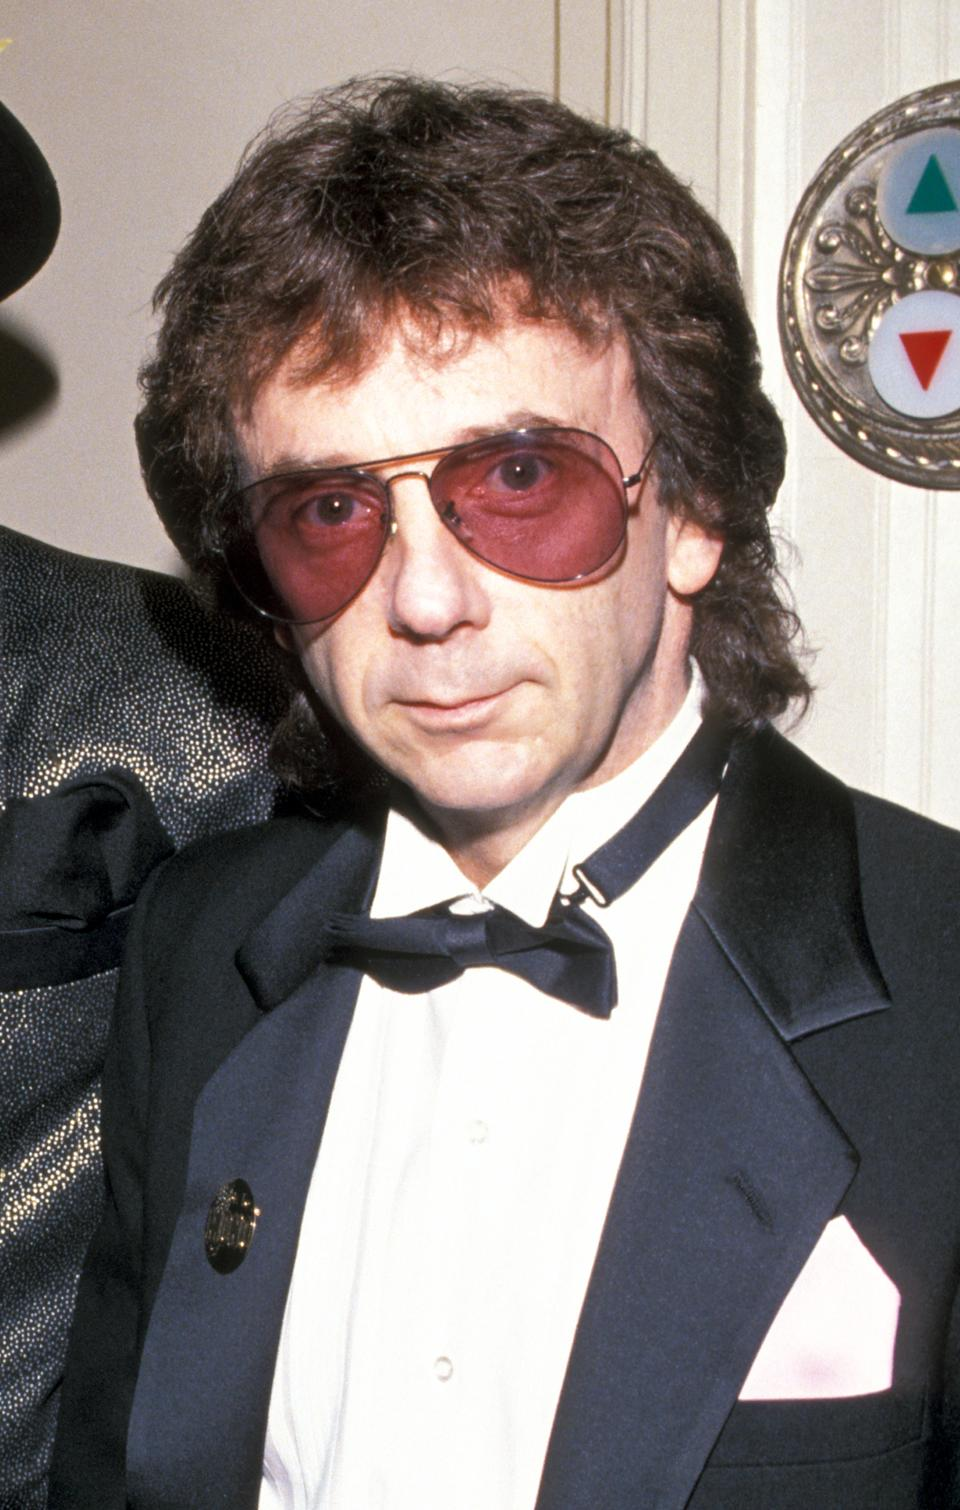 Phil Spector photographed during the Rock and Roll Hall of Fame induction ceremony in 1989. (Photo by Kevin Mazur/WireImage)